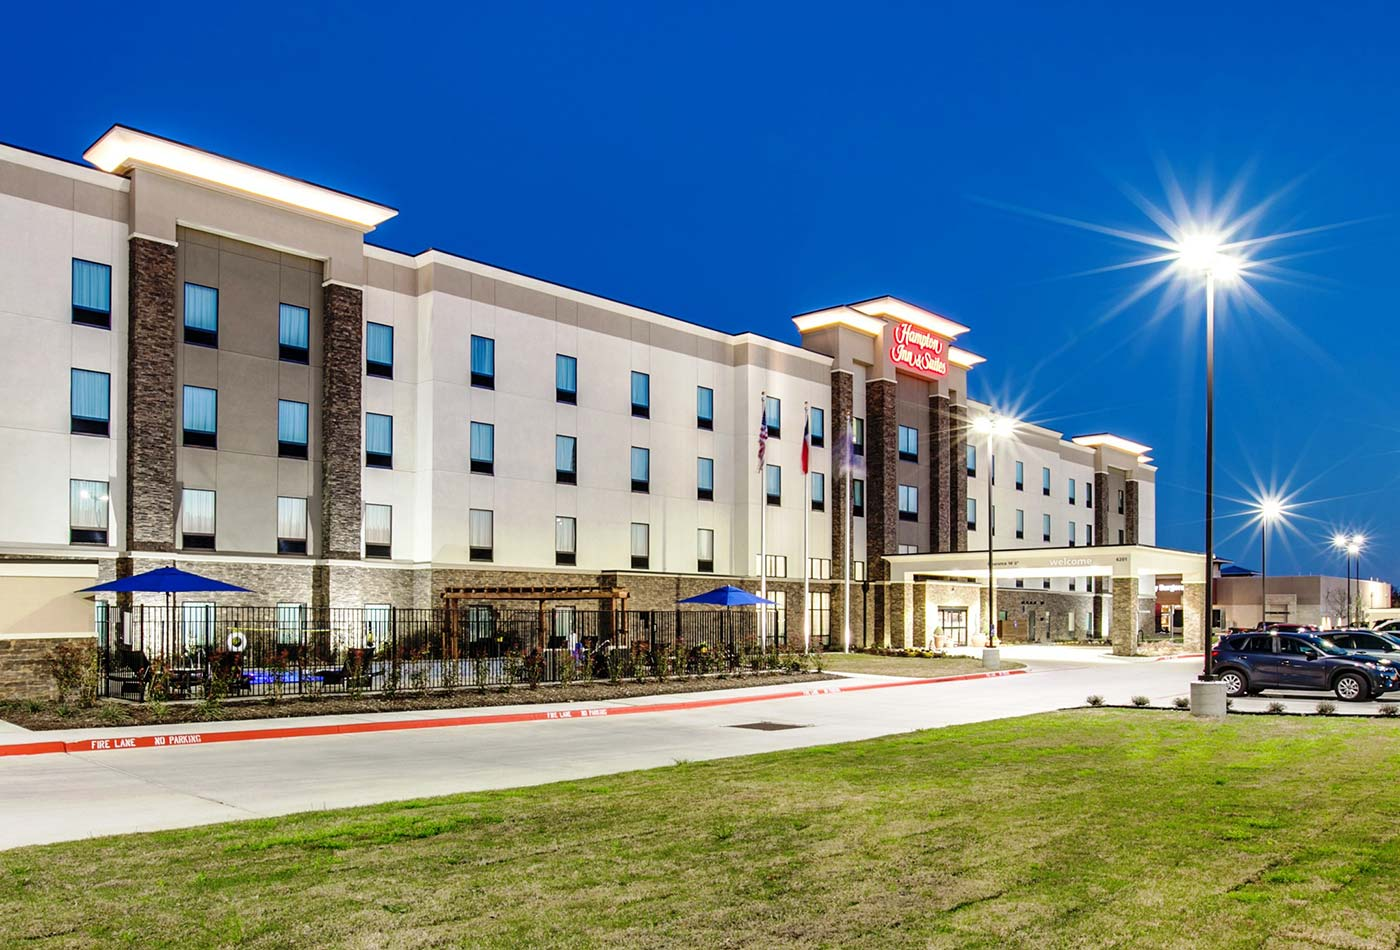 Hampton Inn & Suites Dallas/Ft Worth Airport South